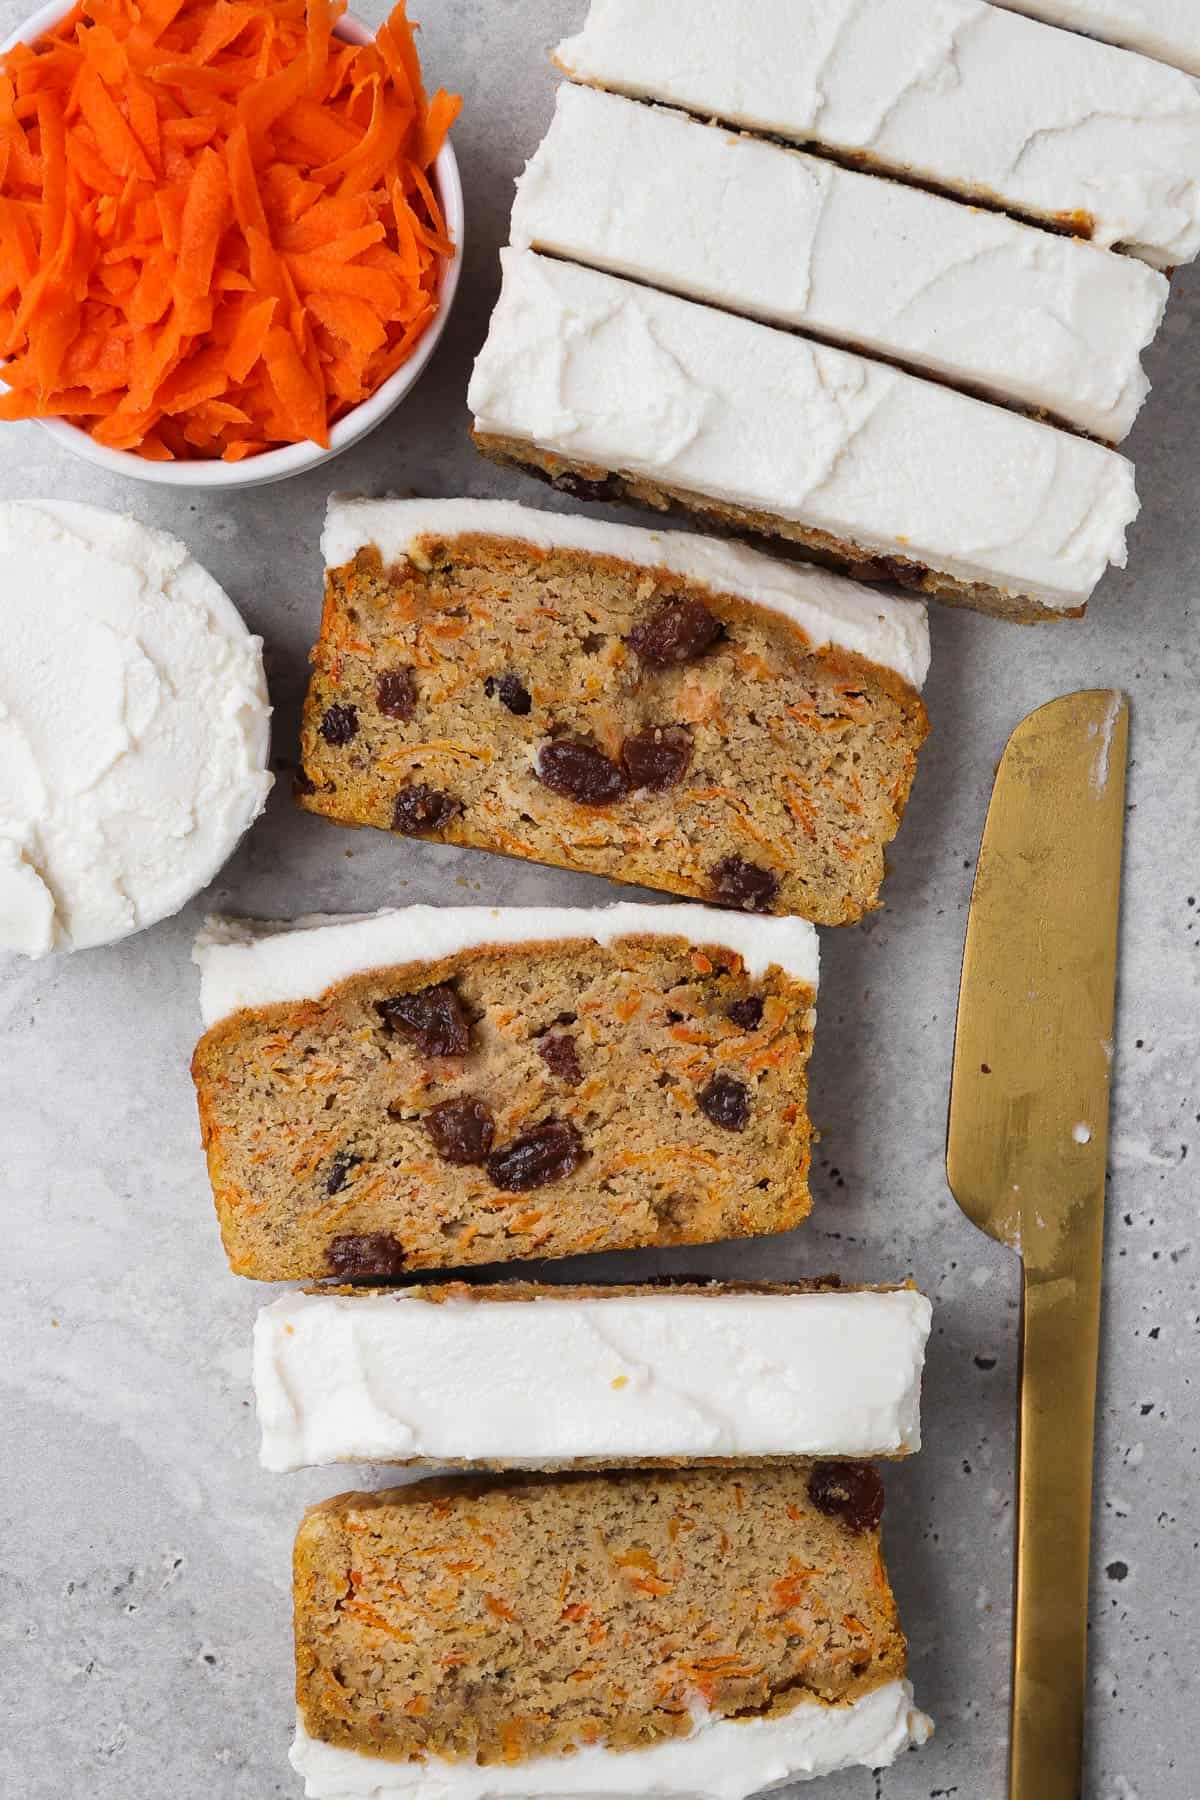 Sliced up frosted bread with grated carrot, frosting and gold knife on the side for garnish.